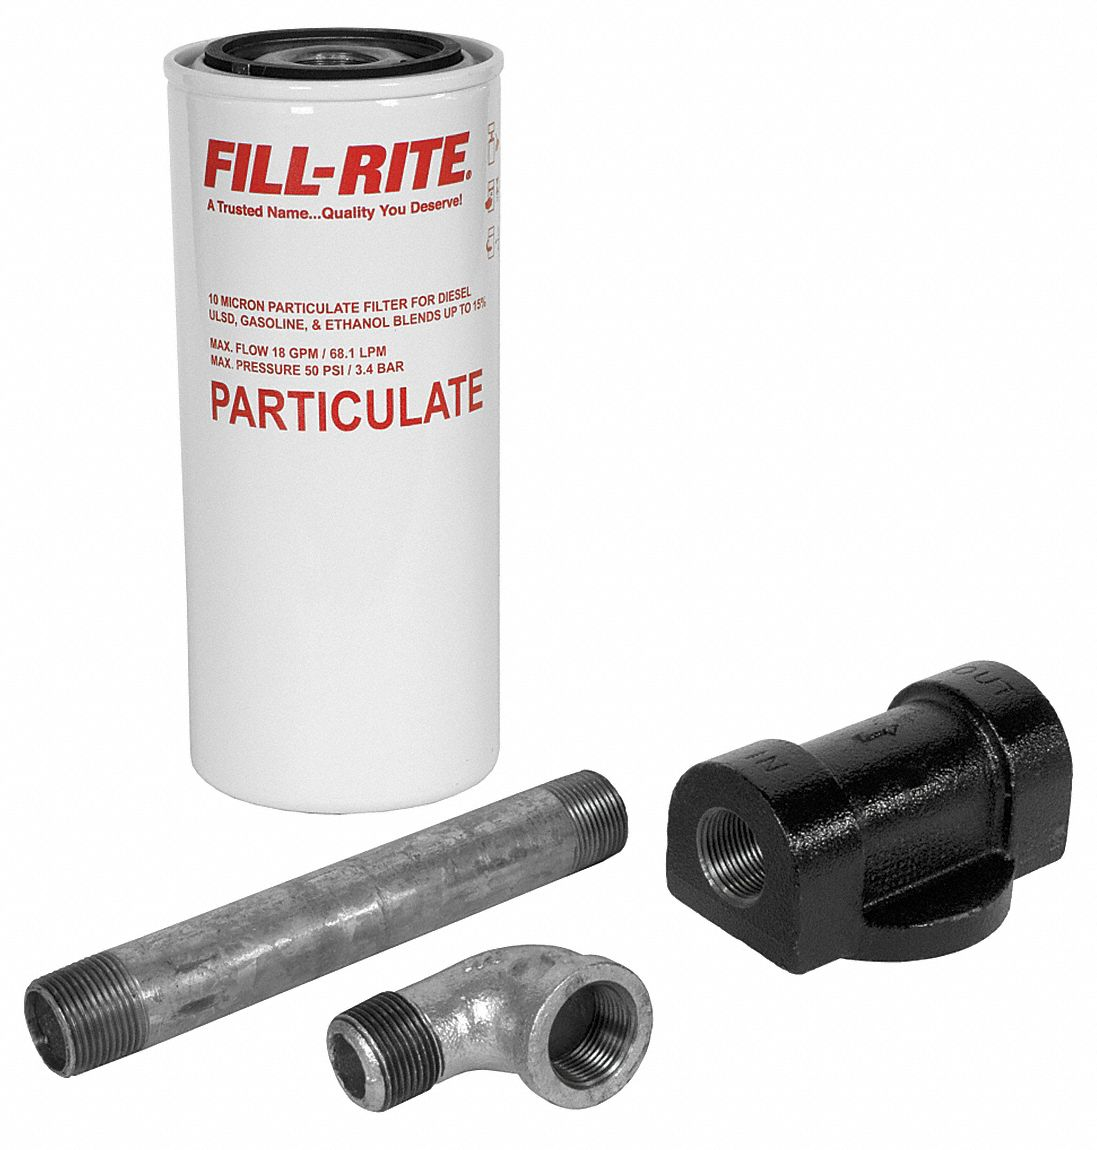 "FILL-RITE Filter Head Fuel Filter Housing, 3/4"" NPT - 4FY21